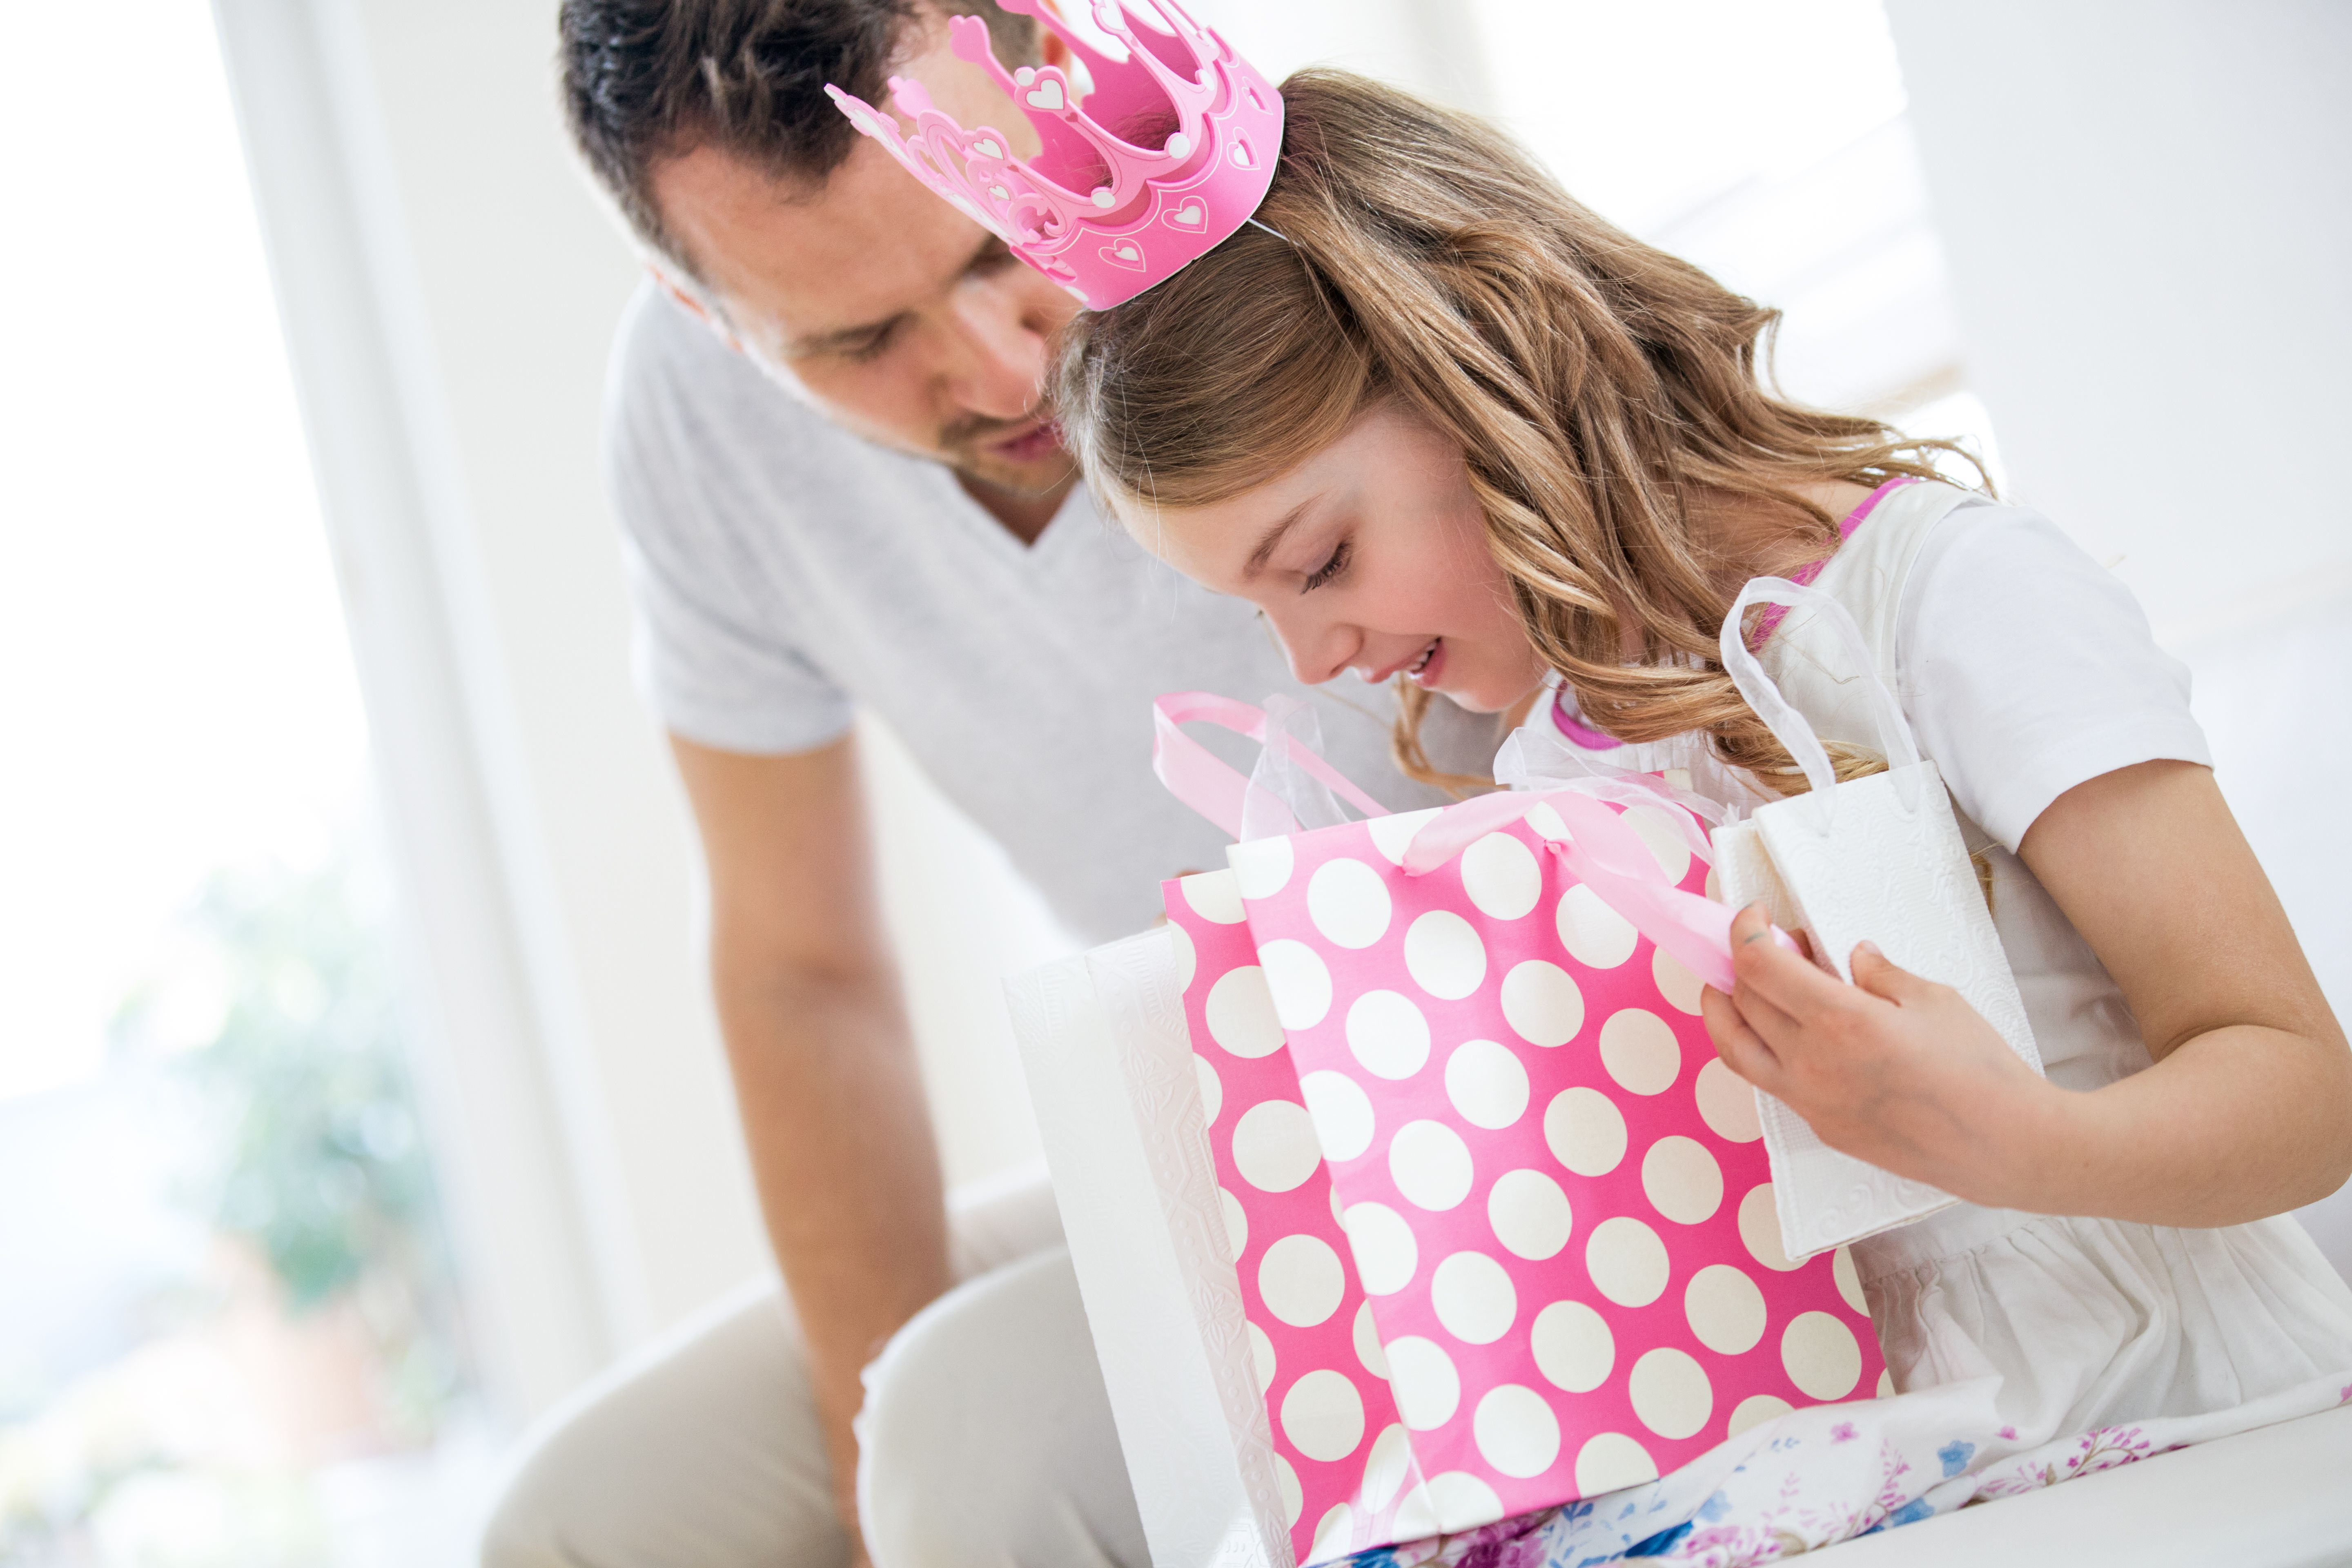 Girl wearing pink crown holding gift bags, father watching